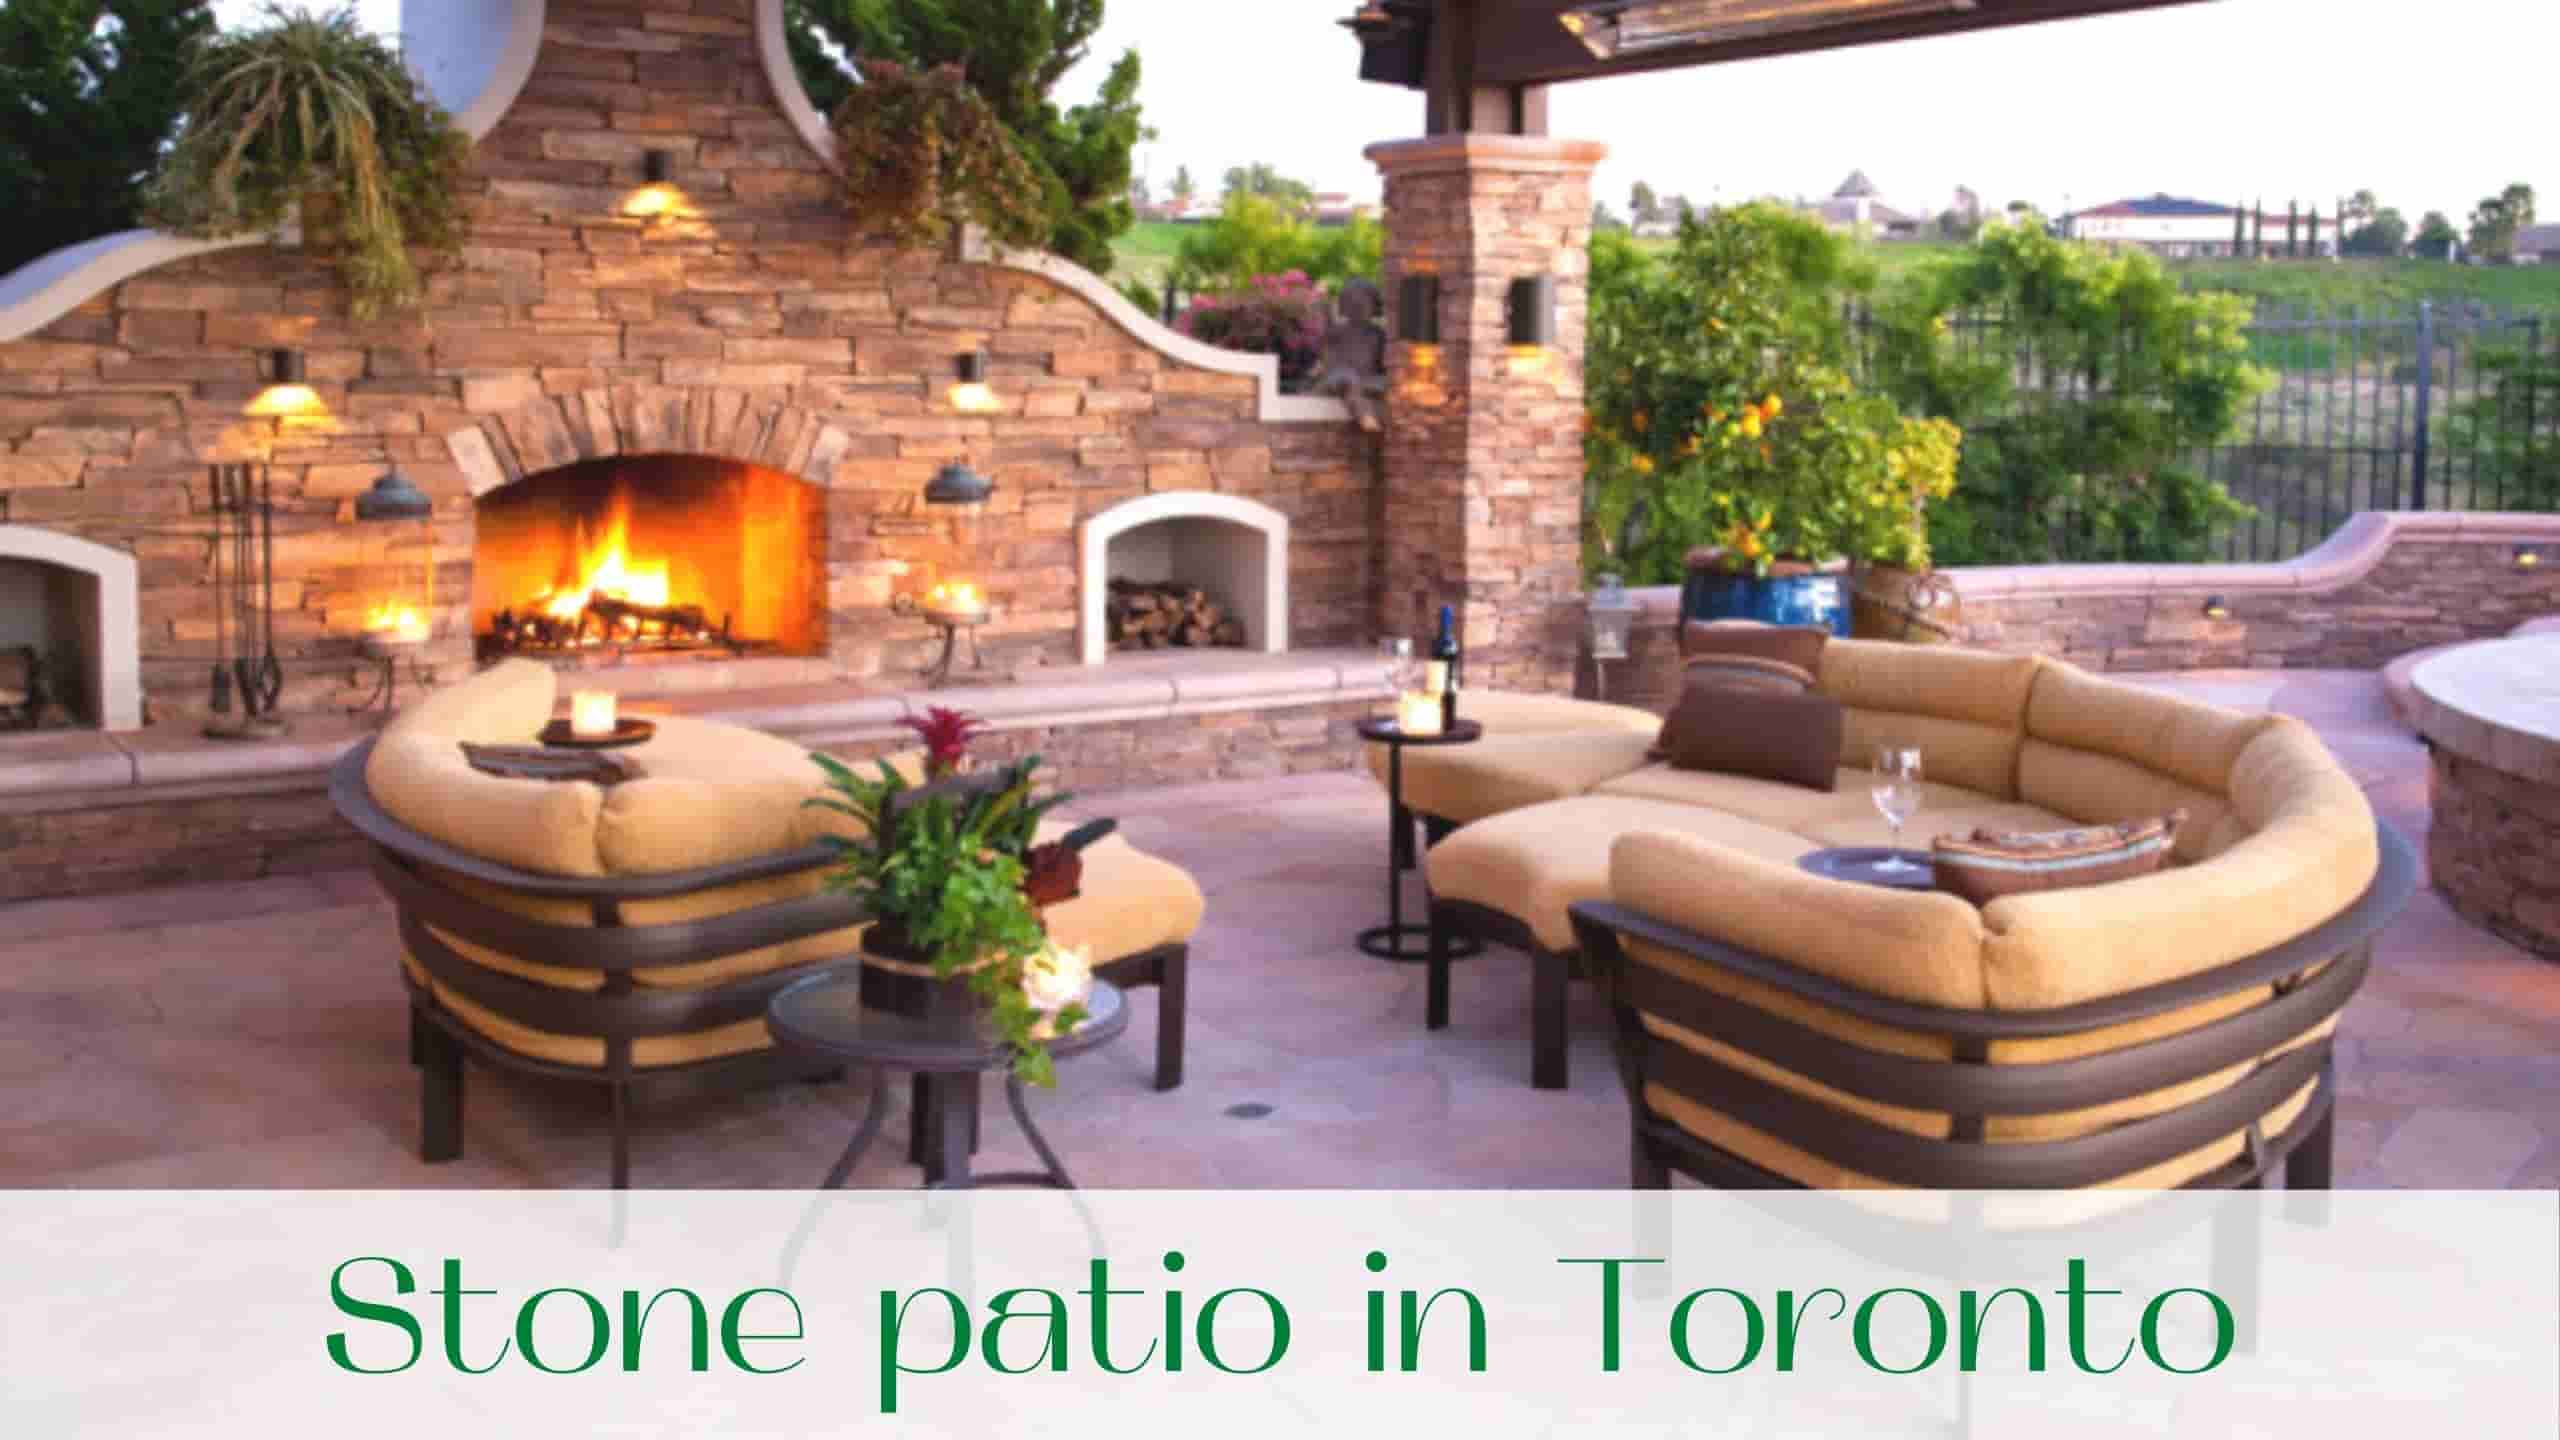 image-stone-patio-in-Toronto